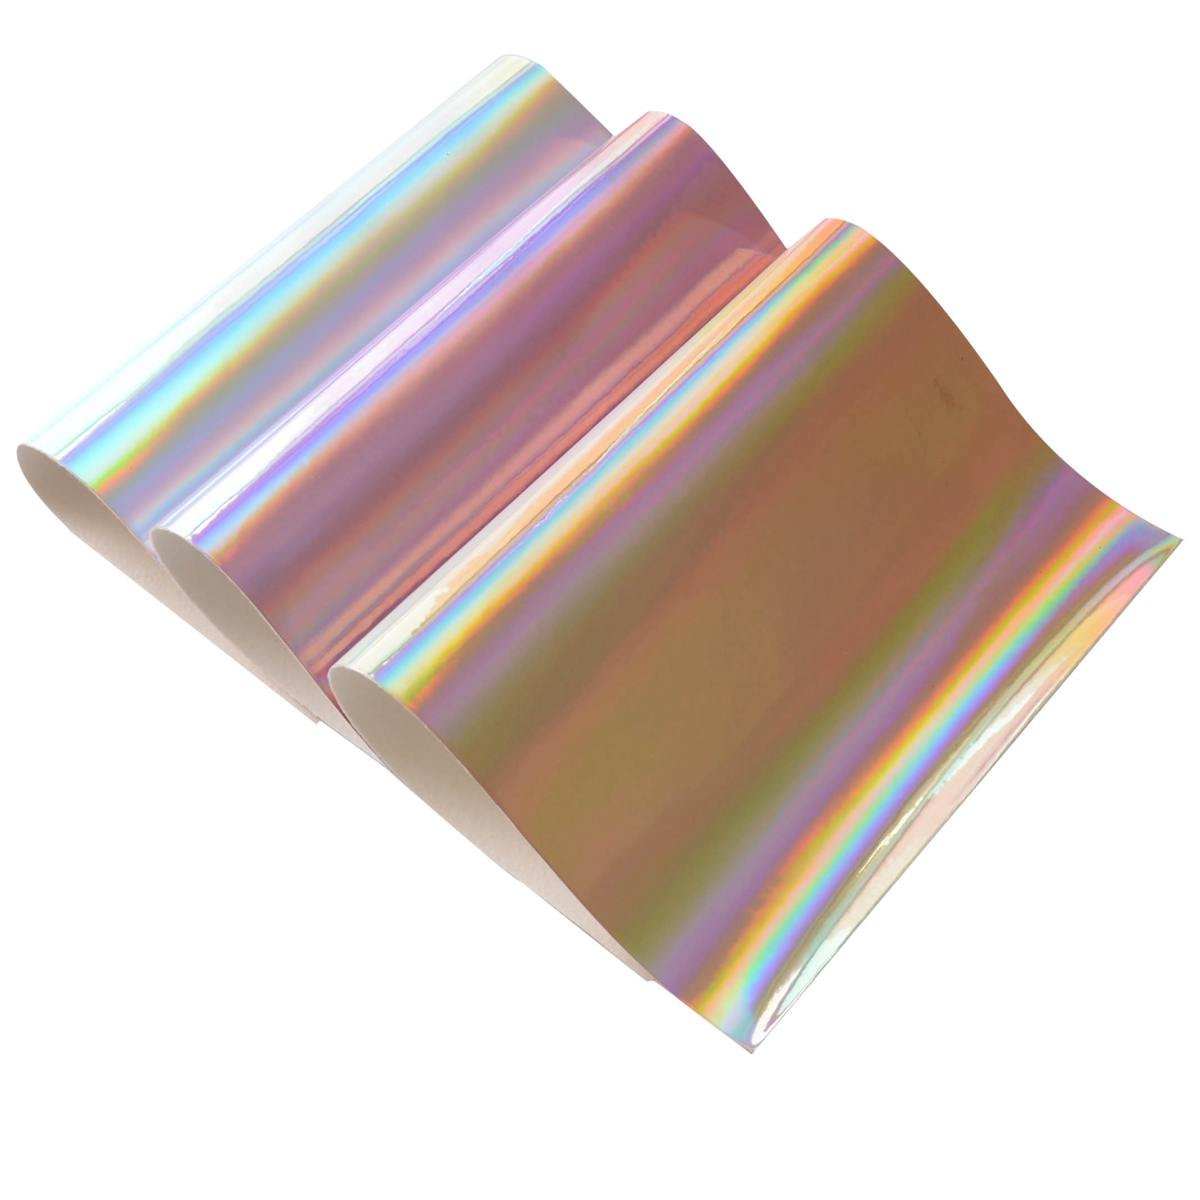 3 Pieces A4 Size Blue Holographic Faux Leather Fabric Sheets Cotton Back for Hair Bows Making, Hair Clips Making, Headband Making, Kids' Crafts Making, Hat Making, Hair Crafts, Shoe Making Kids' Crafts Making Doublefire